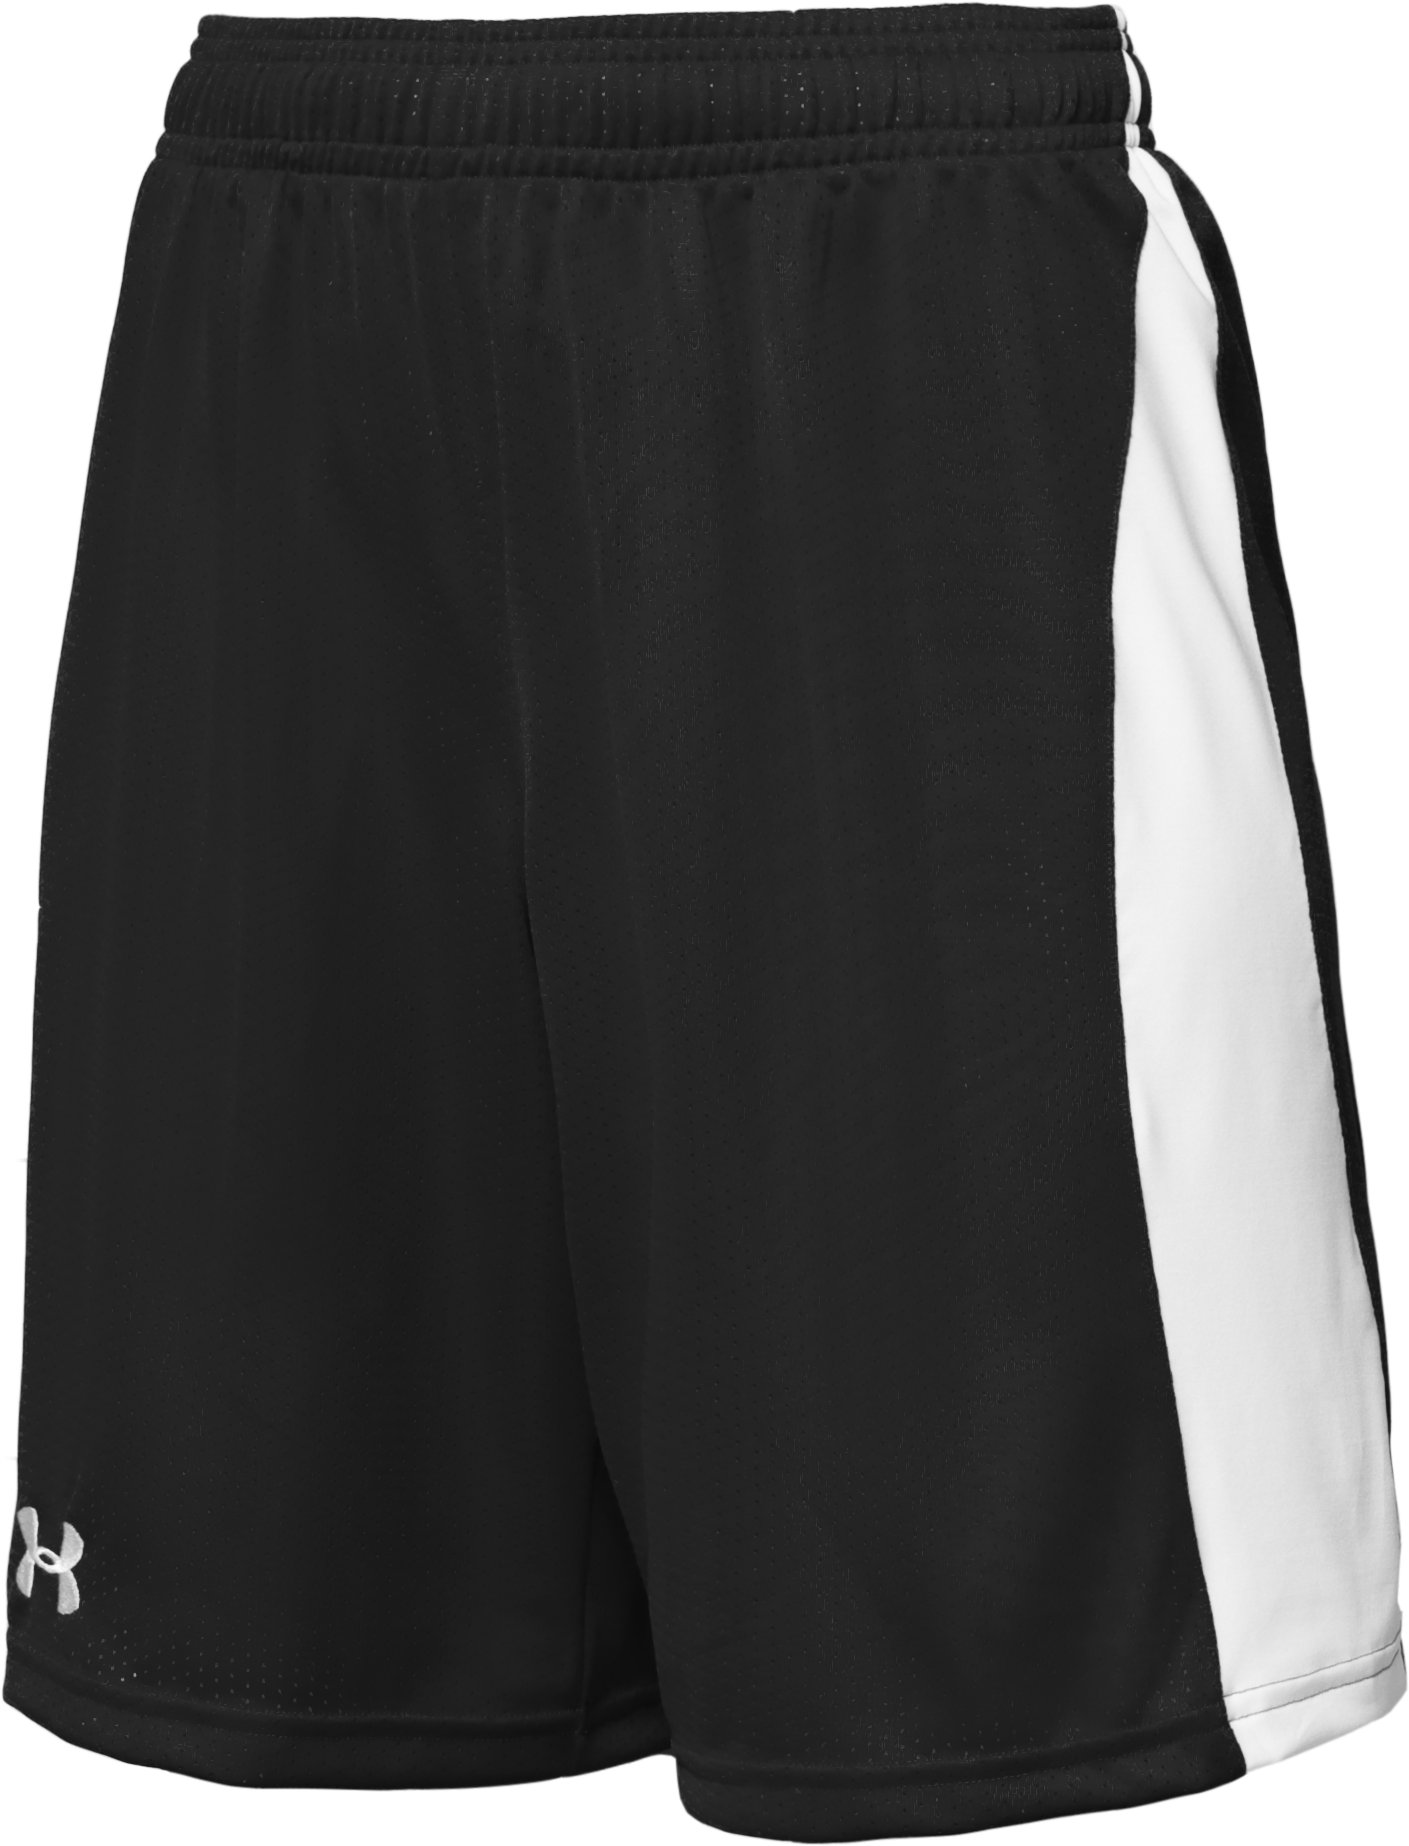 "Boys' UA Finisher 8.5"" Shorts, Black , zoomed image"